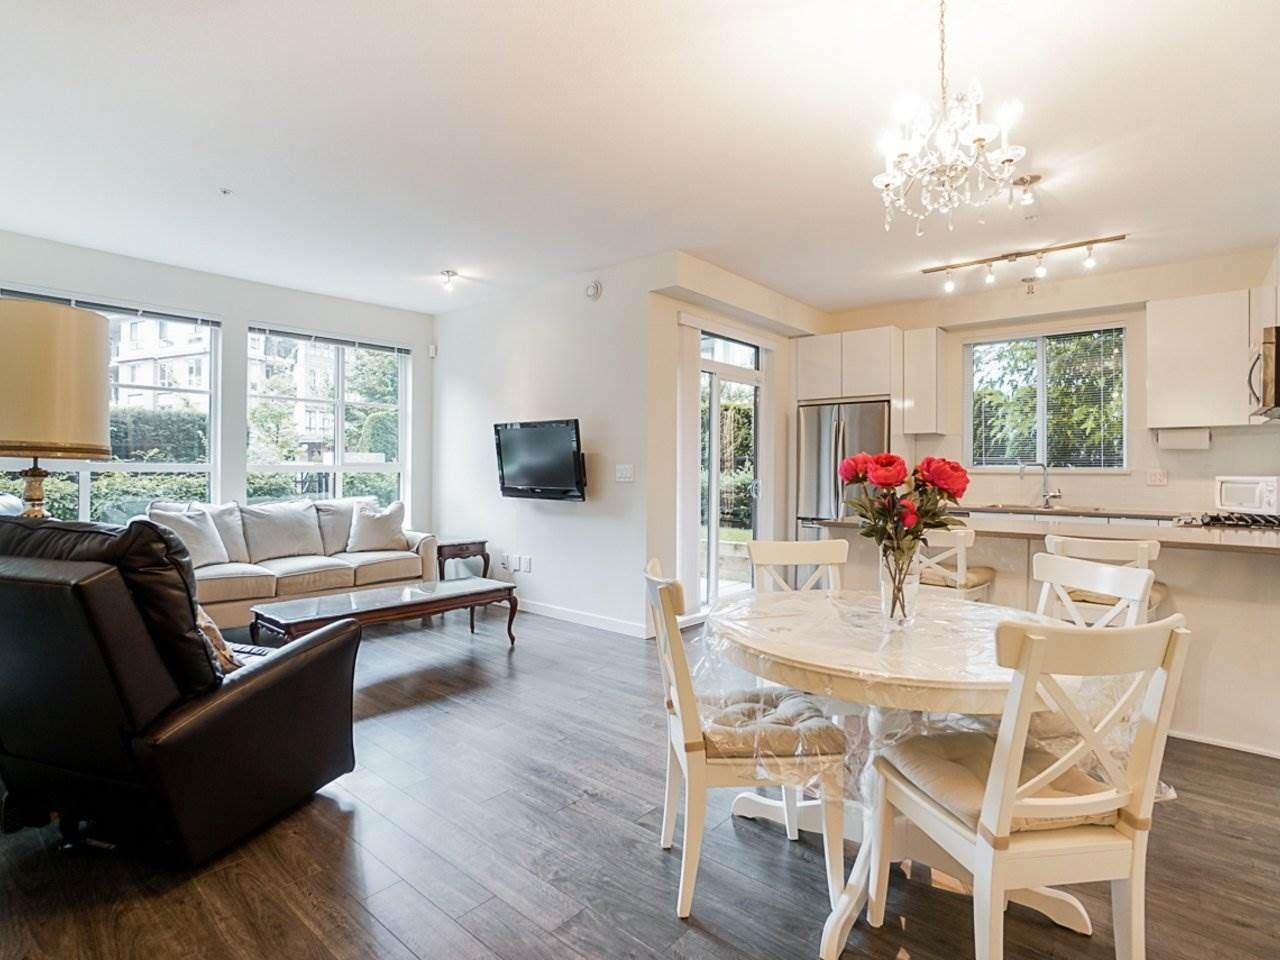 Photo 6: Photos: 108 1151 WINDSOR Mews in Coquitlam: New Horizons Condo for sale : MLS®# R2500299